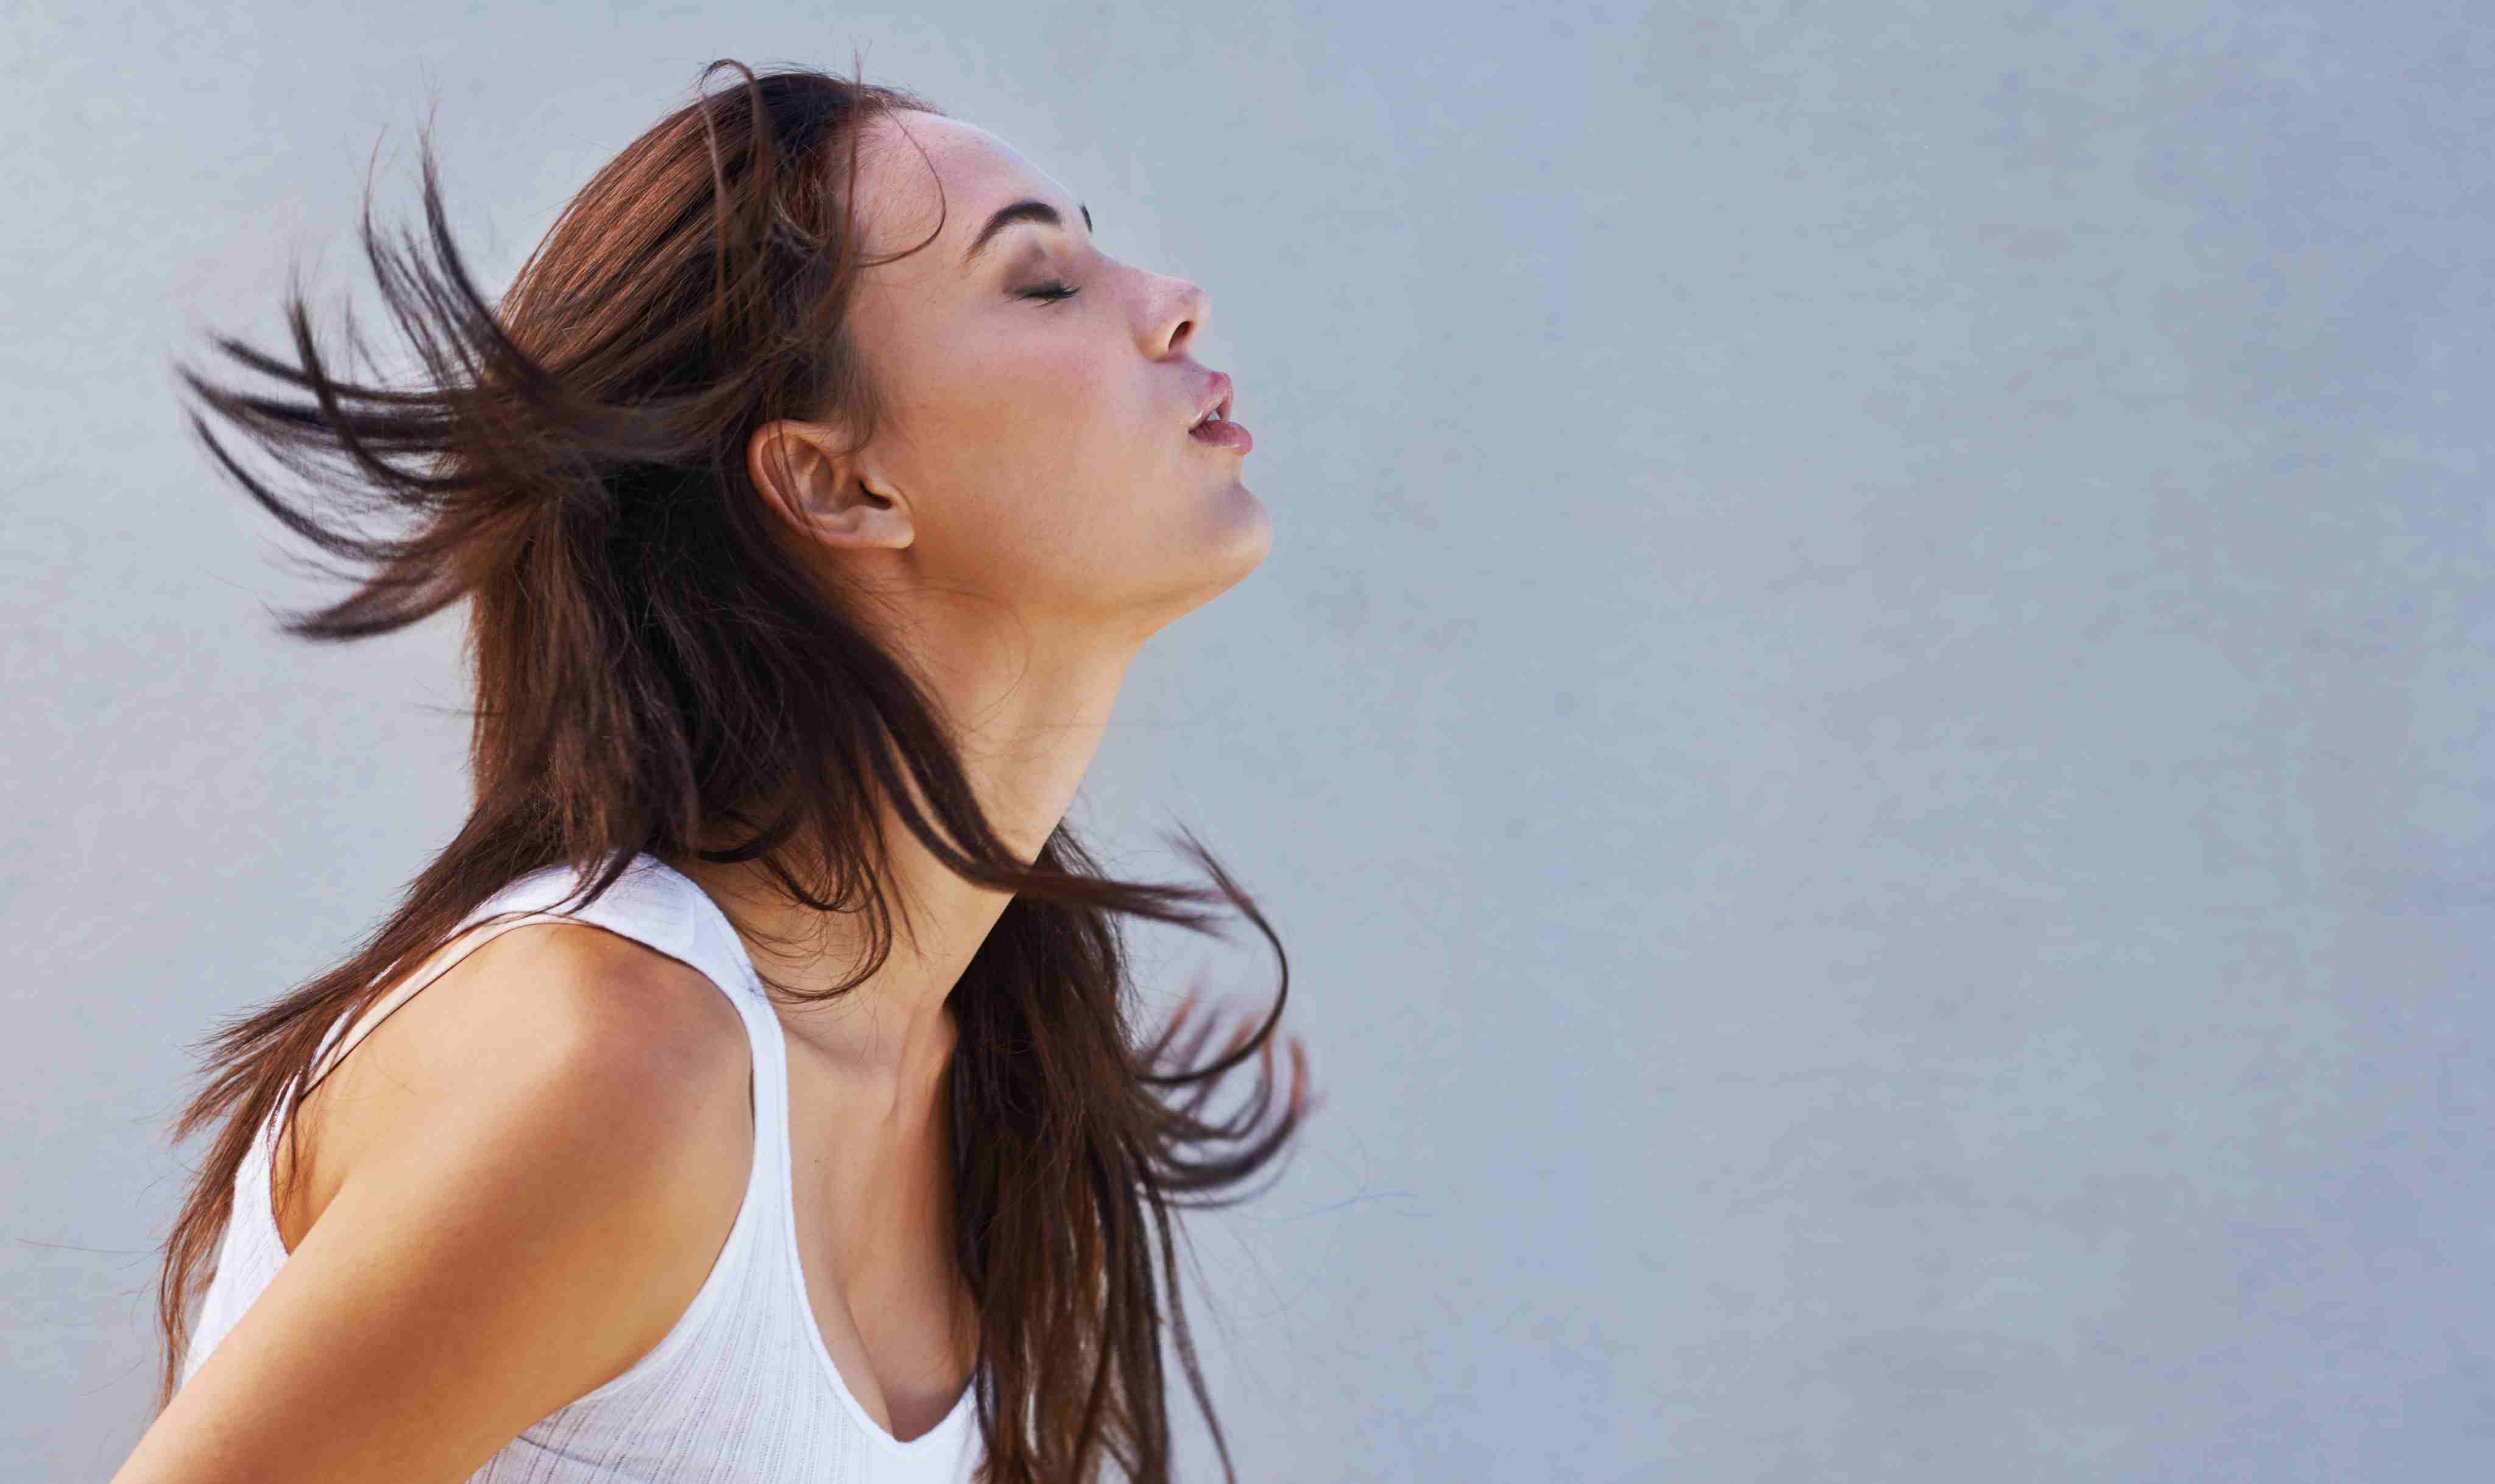 Breathing exercises can really relieve stress well, during lunch or at any other time.